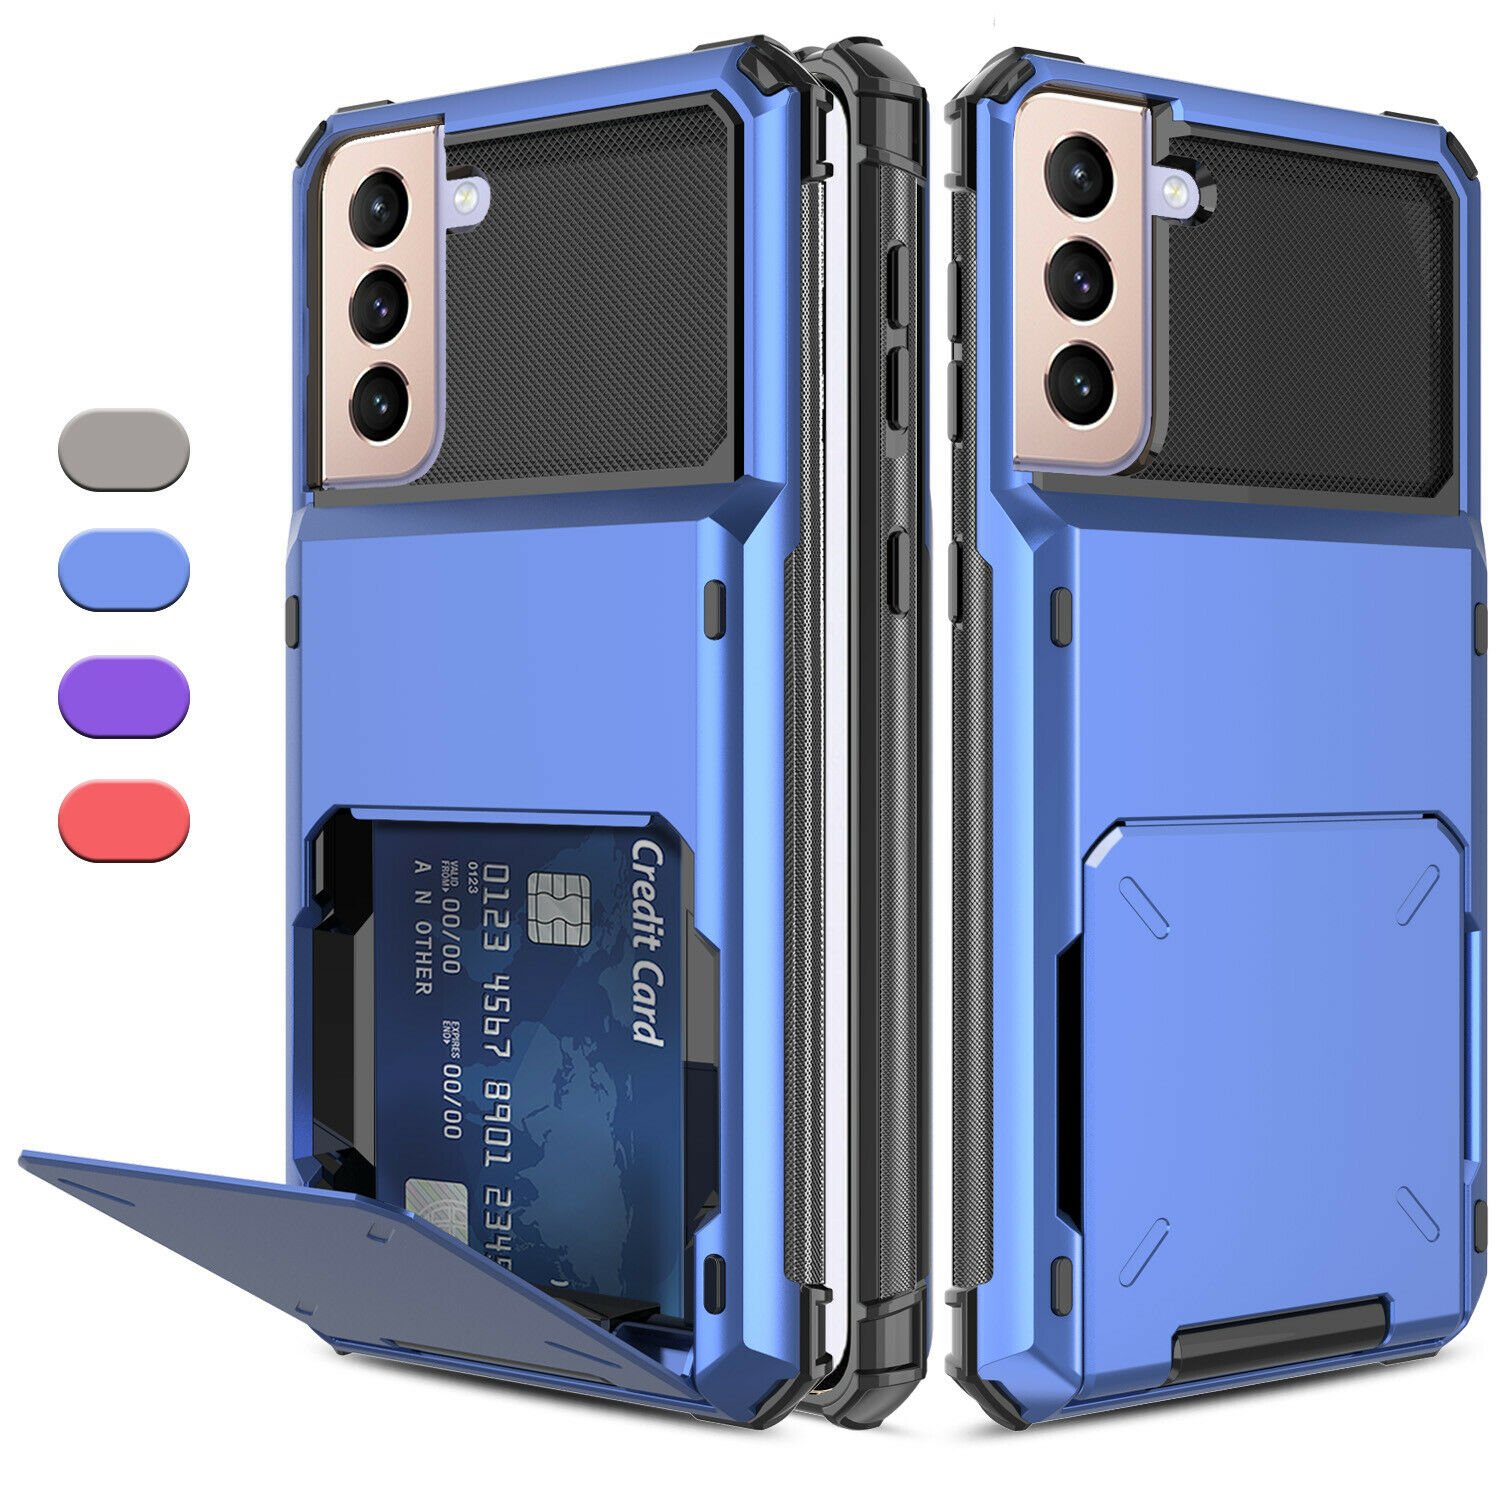 For iPhone 12/Pro Max 5G/11/X/XR/XS Max Battery Charging Case Power Bank Charger Cases, Covers & Skins